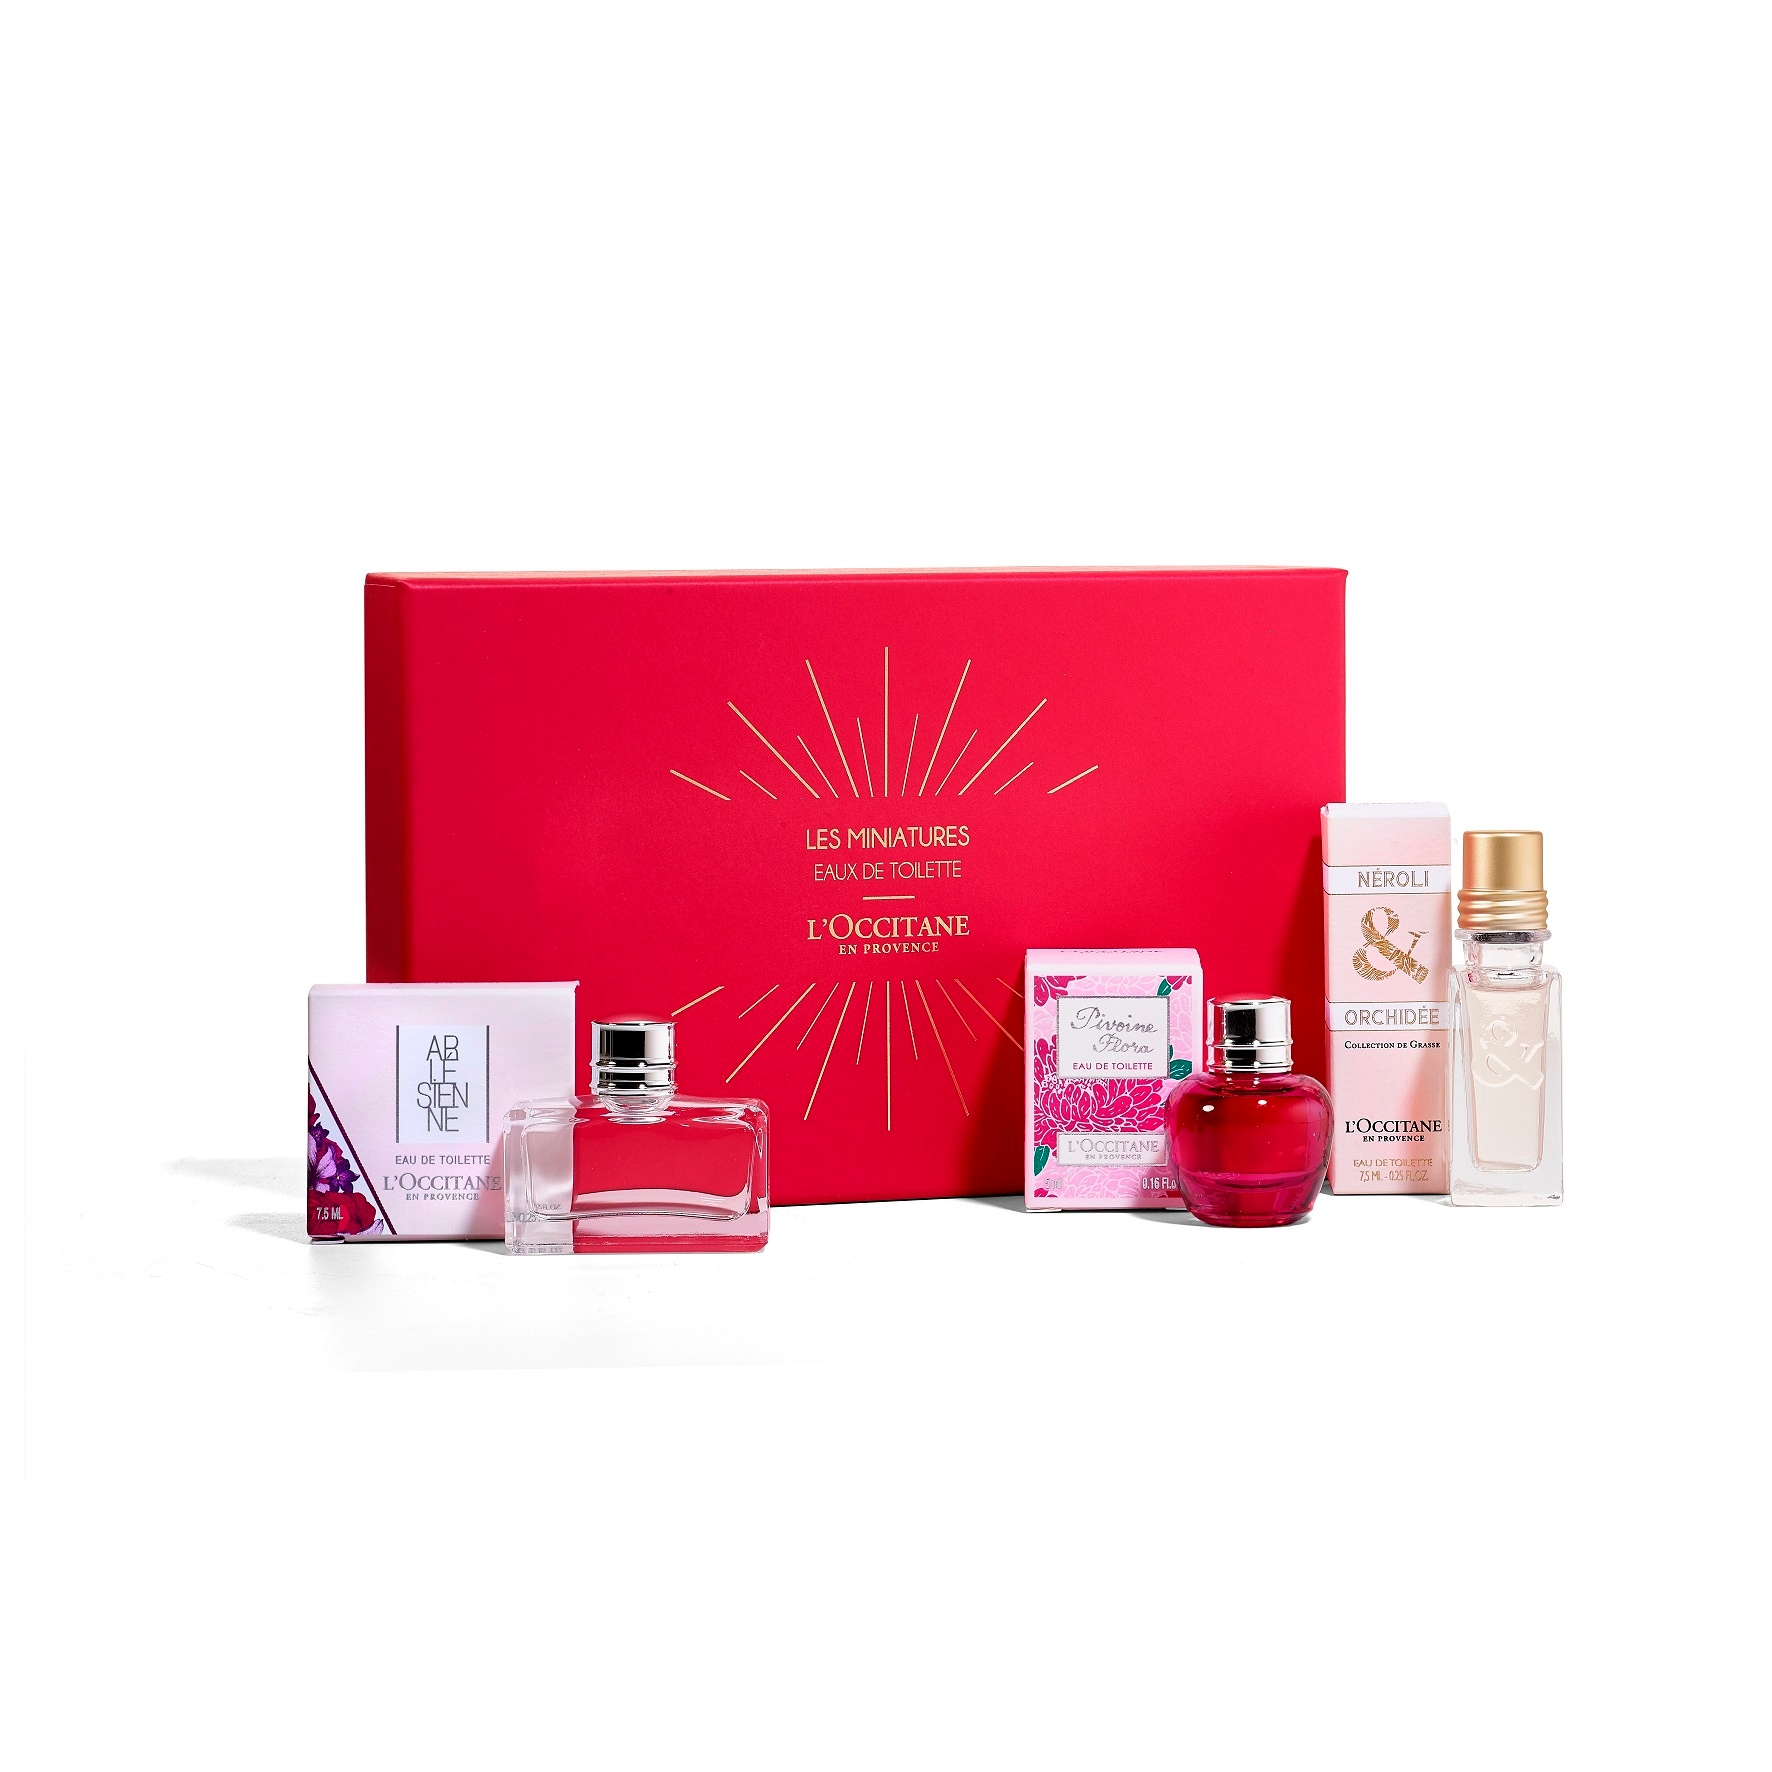 MINI TRIO EAU DE TOILETTE  Three flower scents